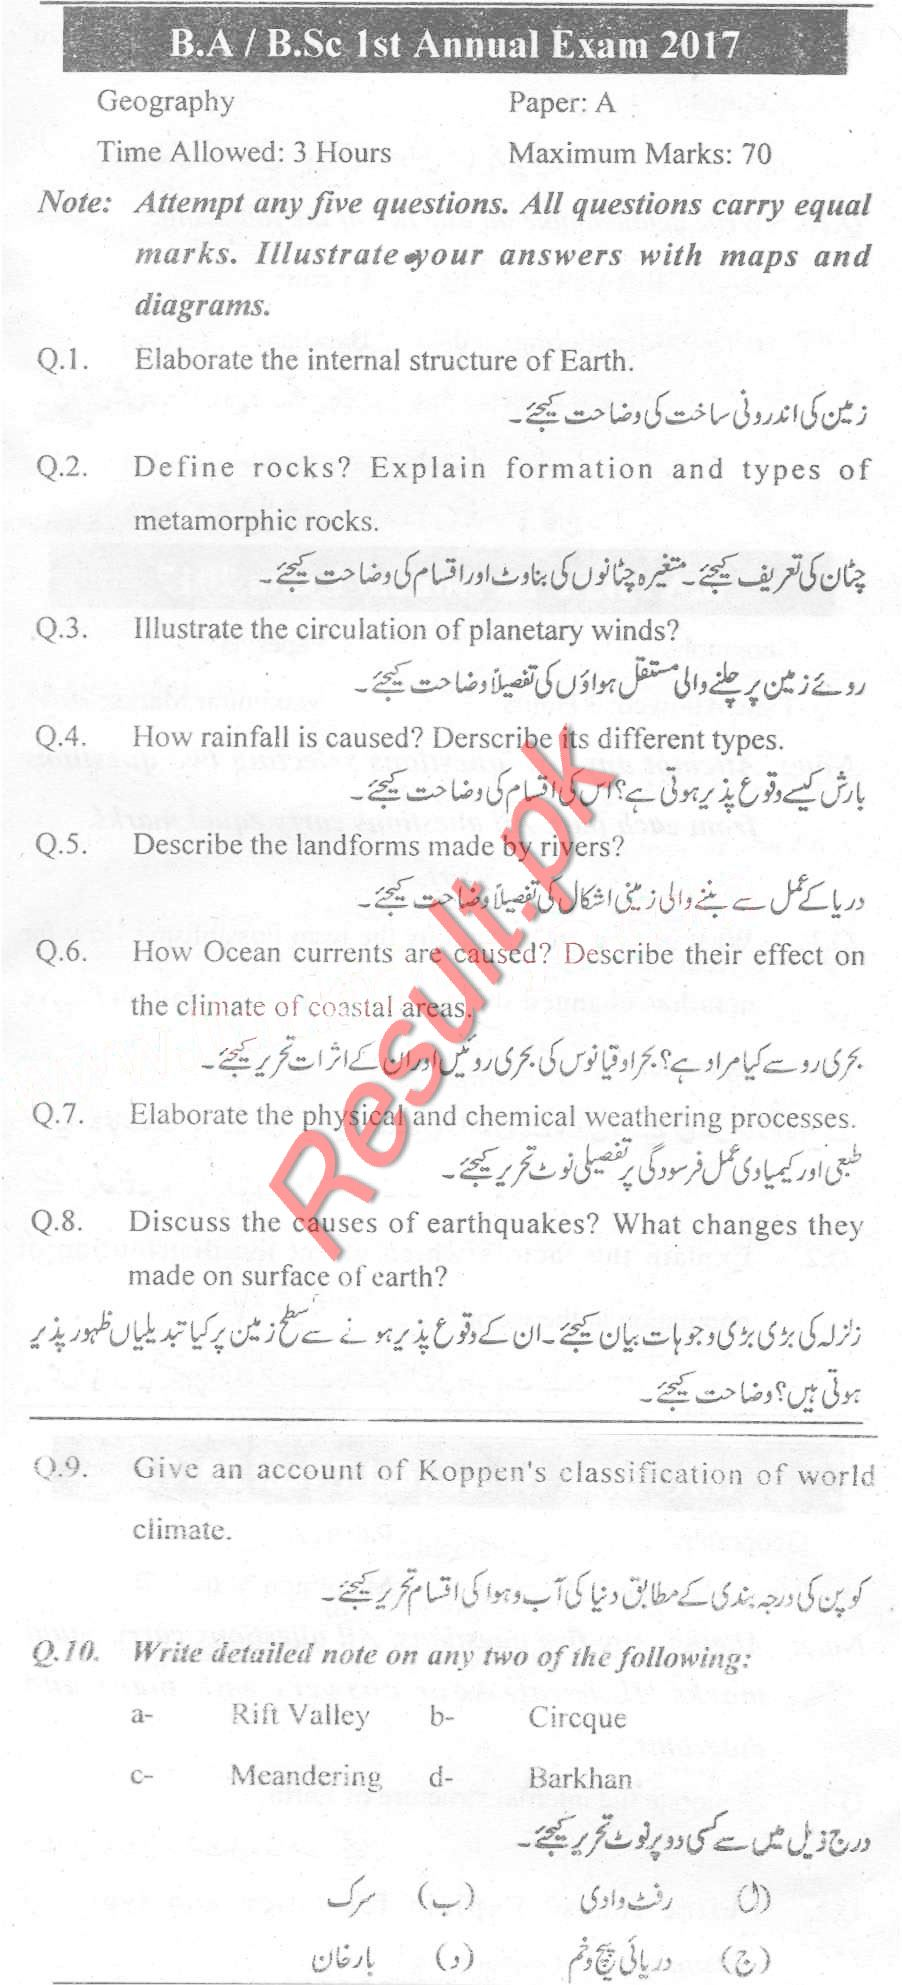 University of Sargodha Past Papers 2018, 2017, 2016, uos